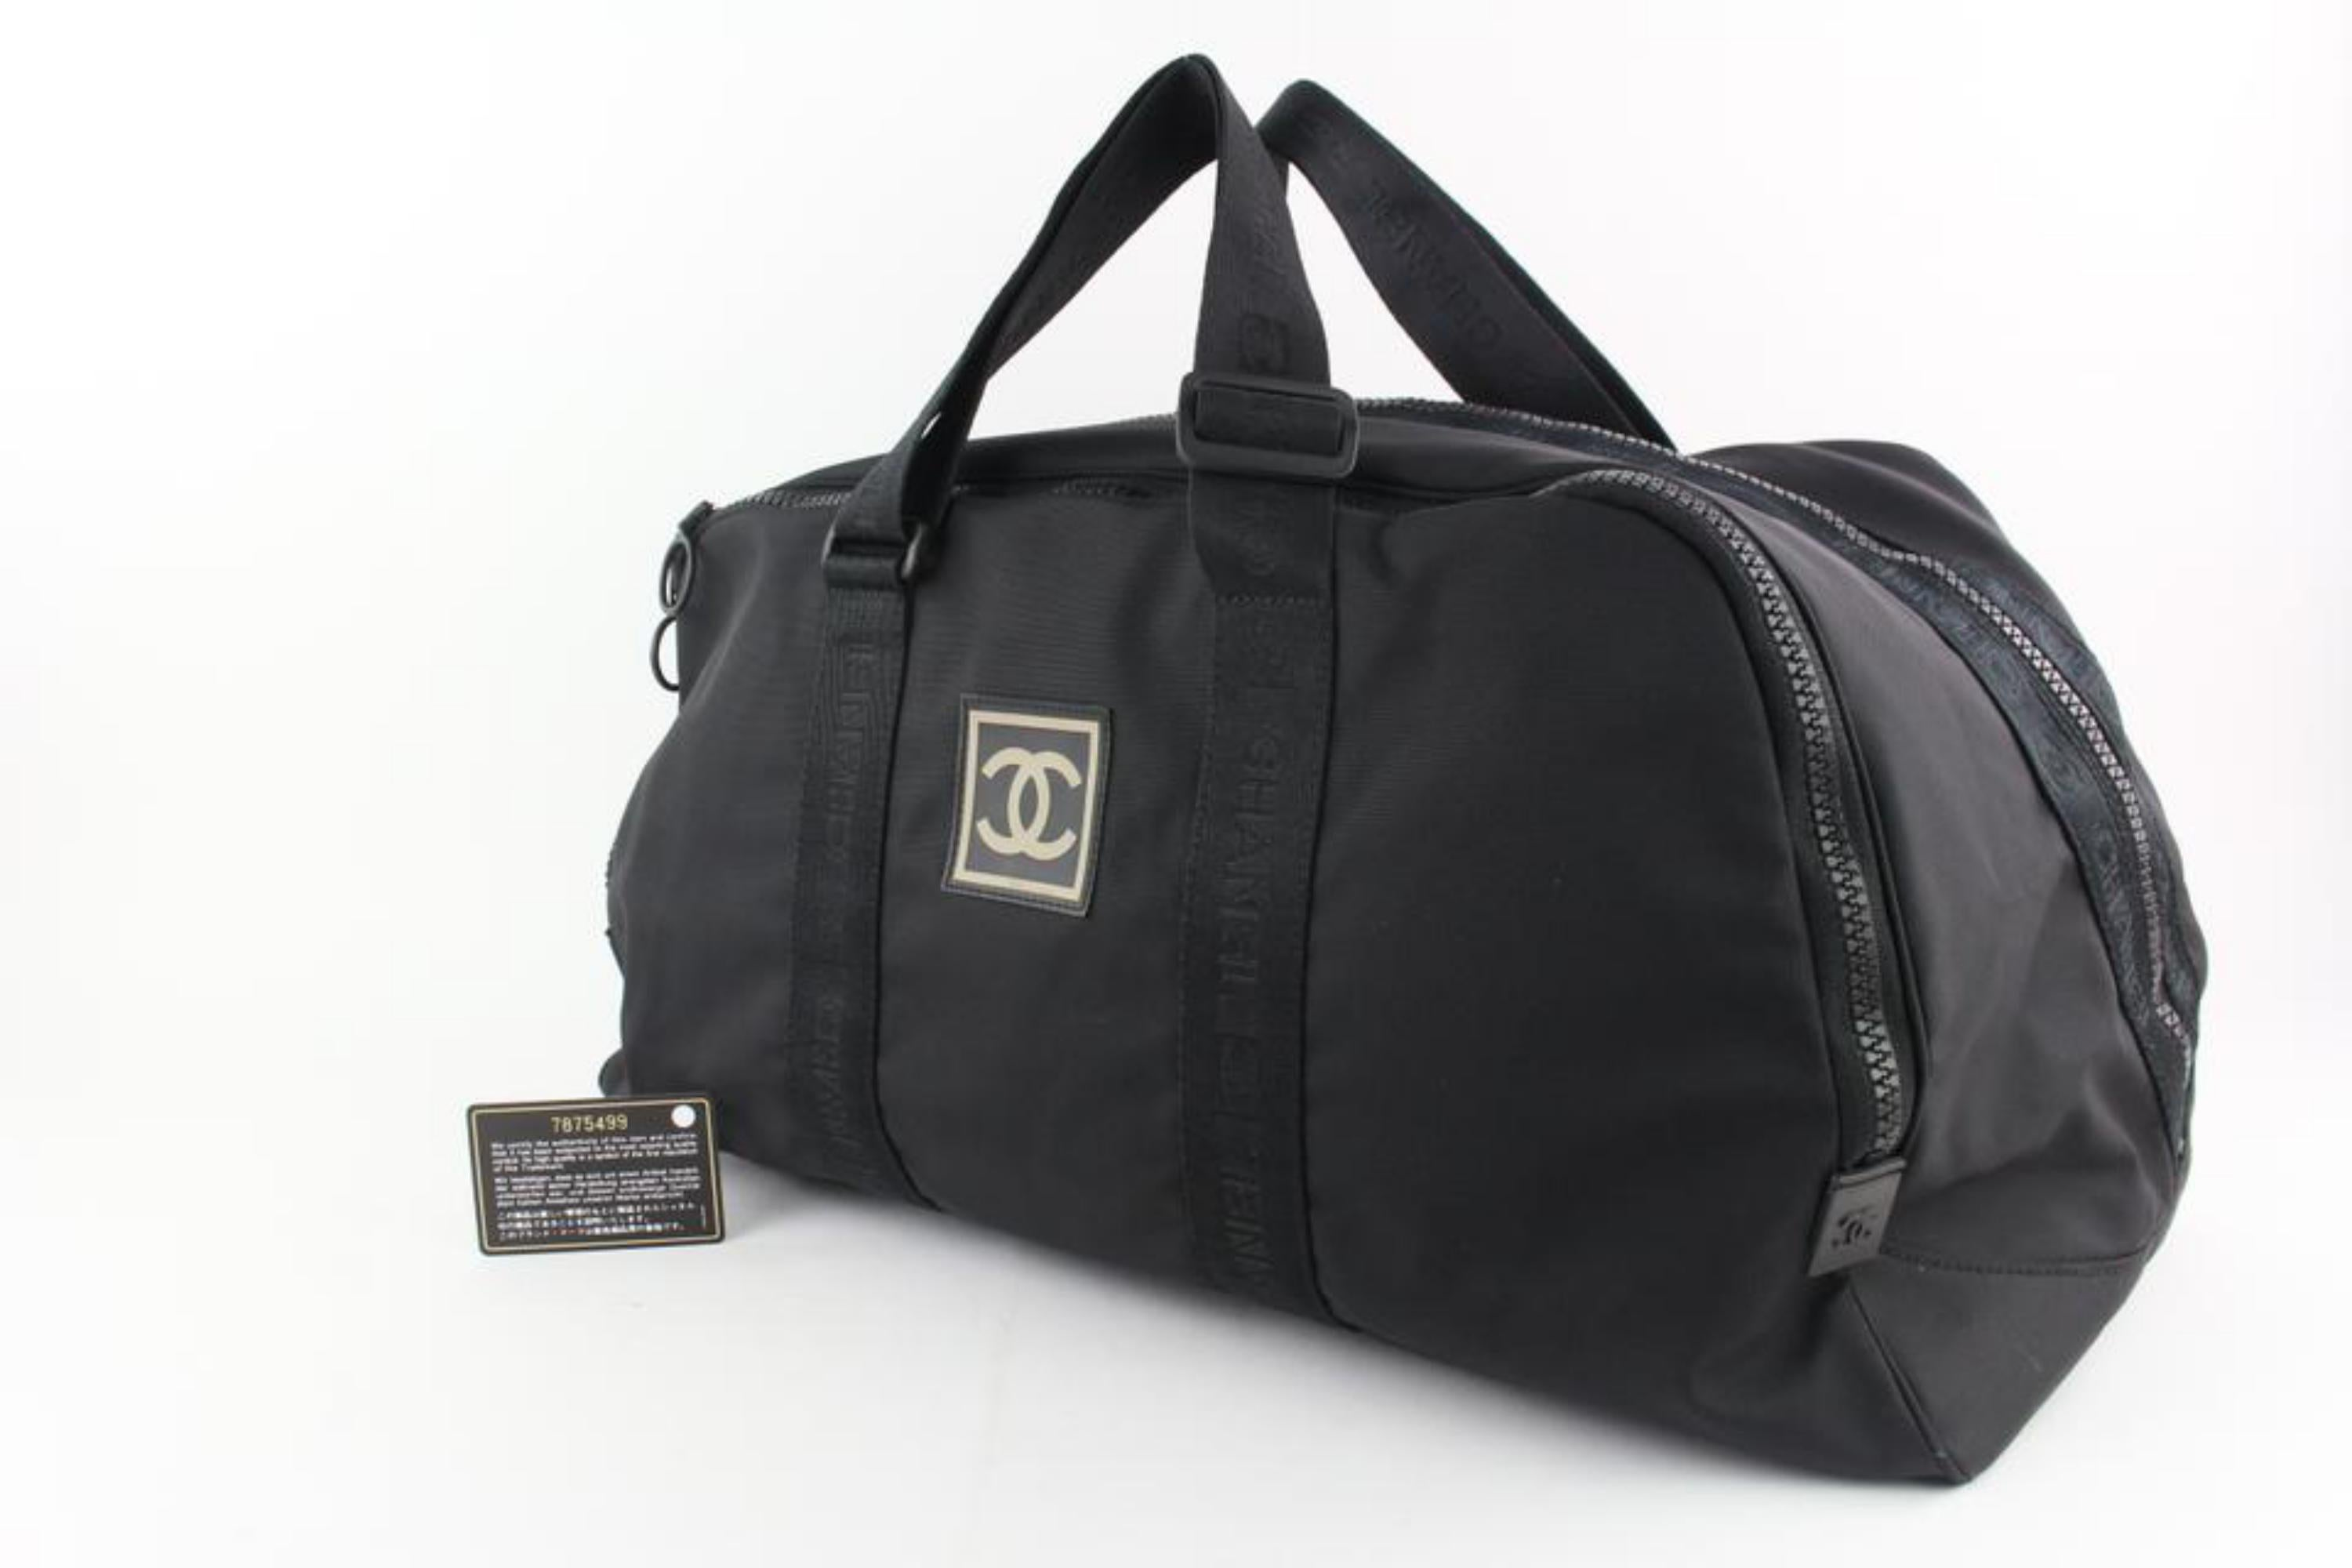 d4eee9d0238d Chanel Duffle Cc Logo Sports Boston 19cz1106 Black Canvas Weekend/Travel Bag  For Sale at 1stdibs